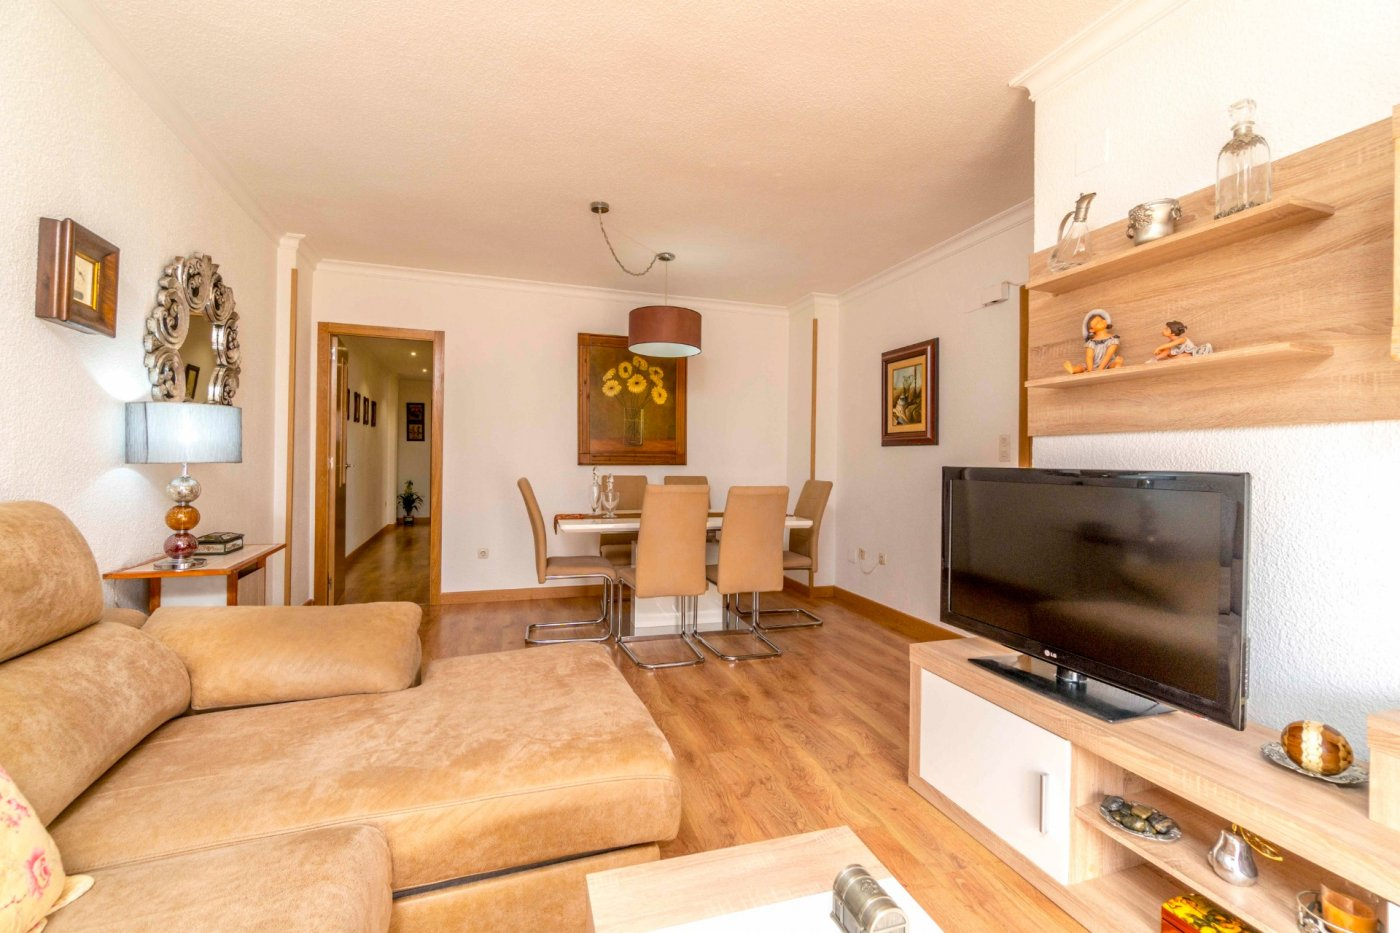 3 Bedrooms Renovated Apartment For Sale in Torrevieja Center